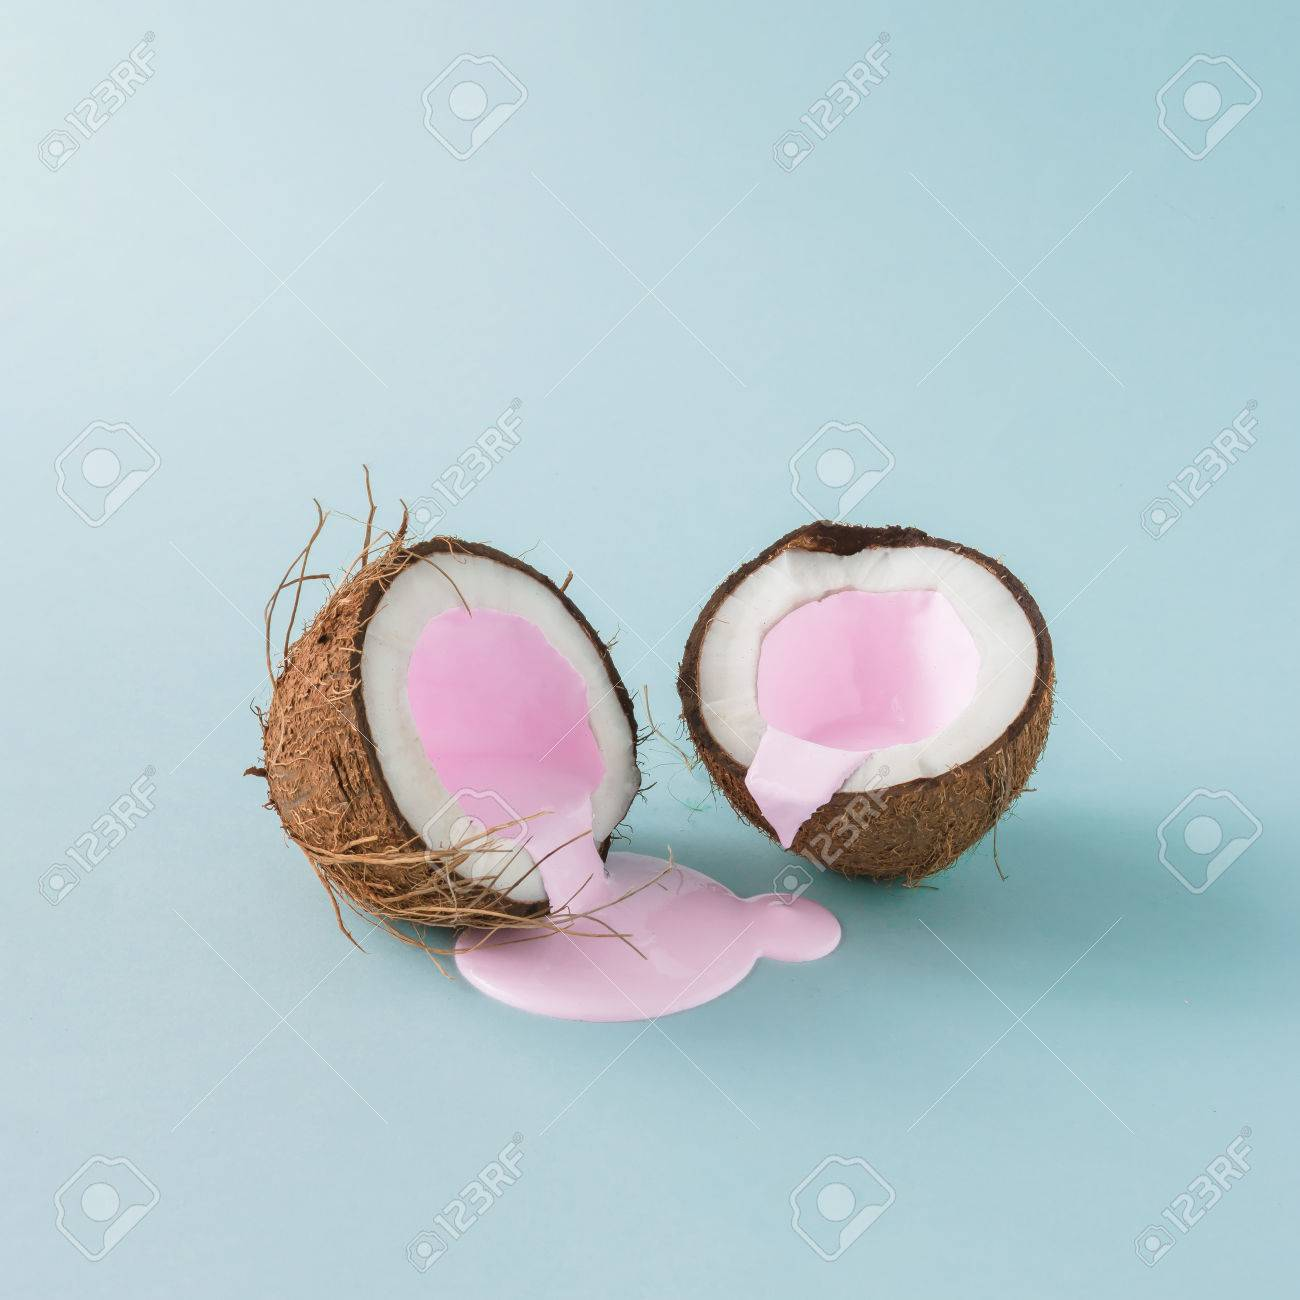 Coconut cracked in half with pink milk pouring. Minimalism. Food creative concept. - 82877726